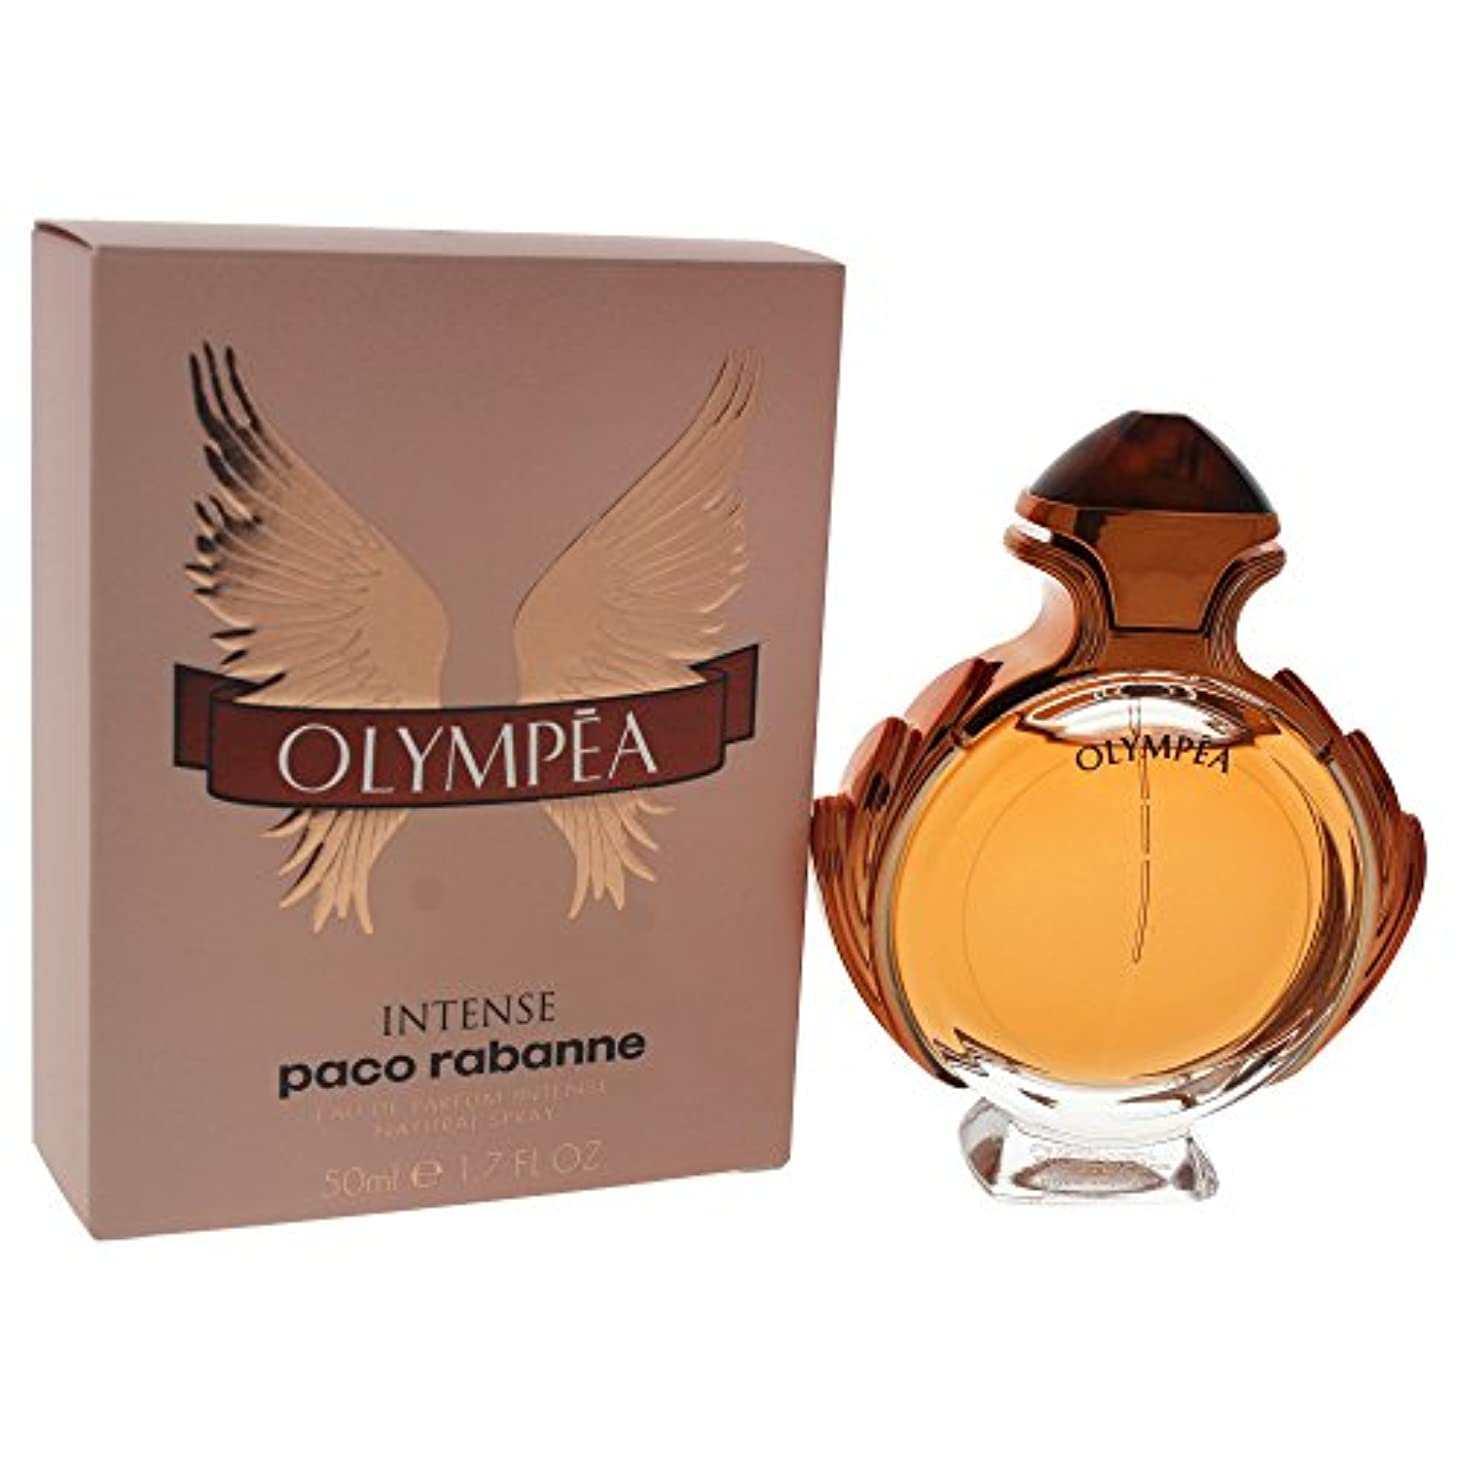 アルコーブ言及するロックOlympea Intense by Paco Rabanne Eau De Parfum Spray 1.7 oz / 50 ml (Women)